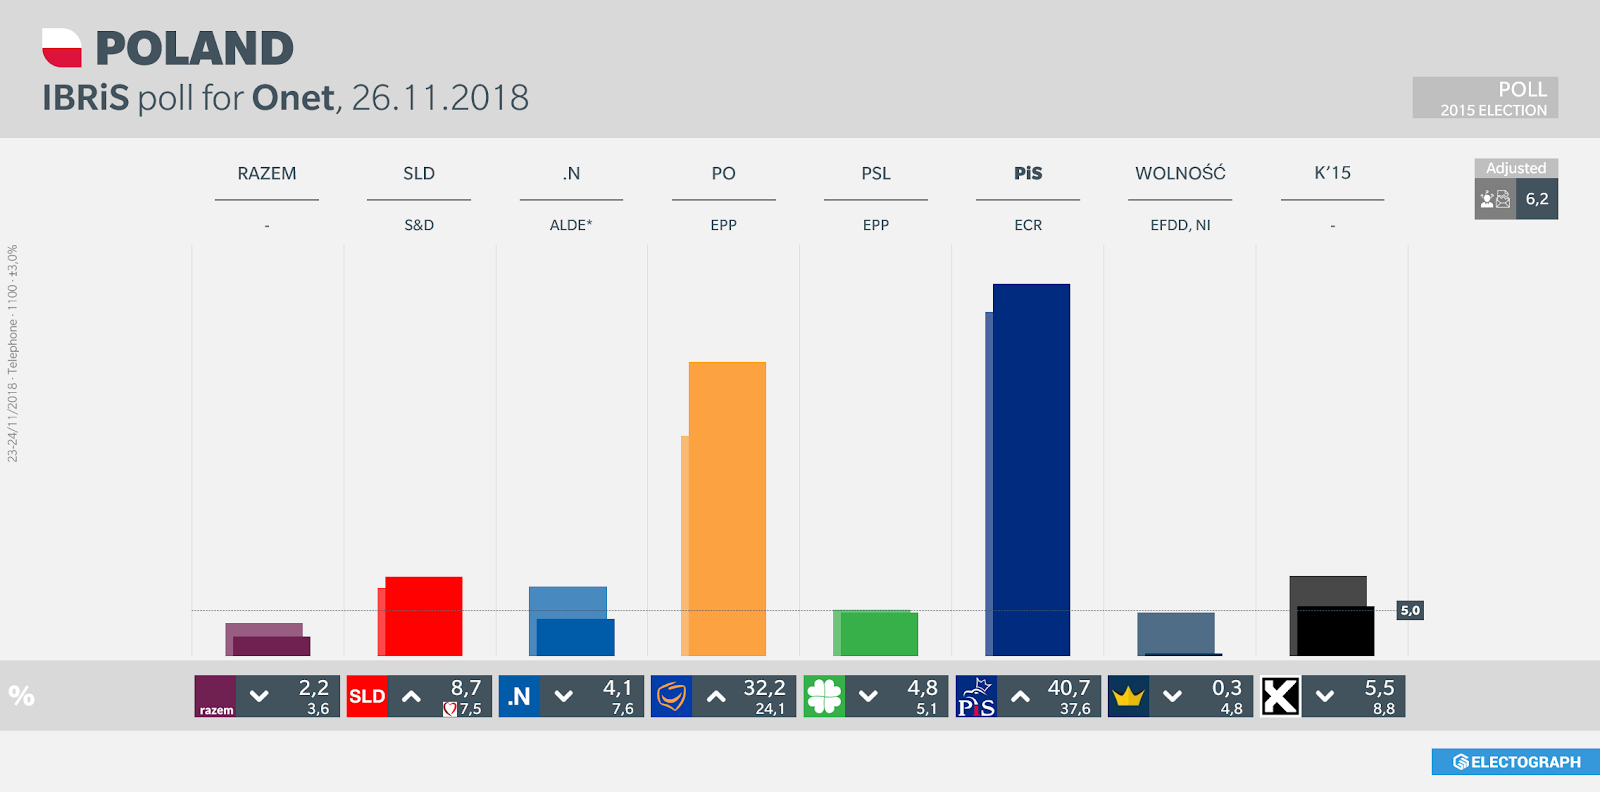 POLAND: IBRiS poll chart for Onet, 26 November 2018